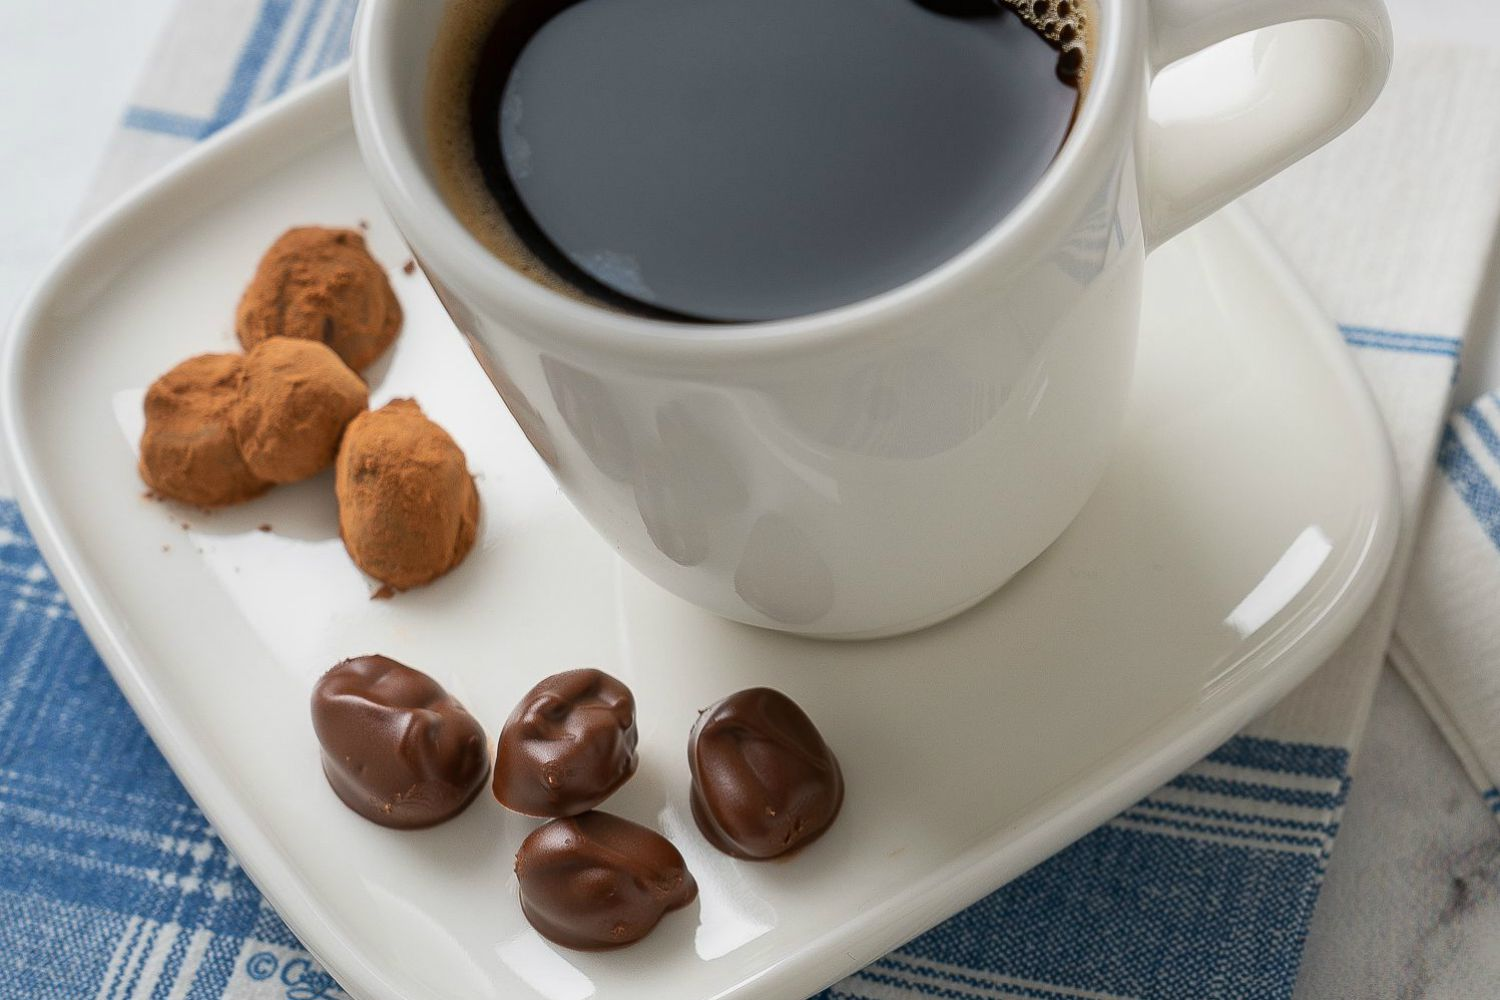 Chocolate-Covered Coffee Beans Are Actually Really Easy to Make at Home